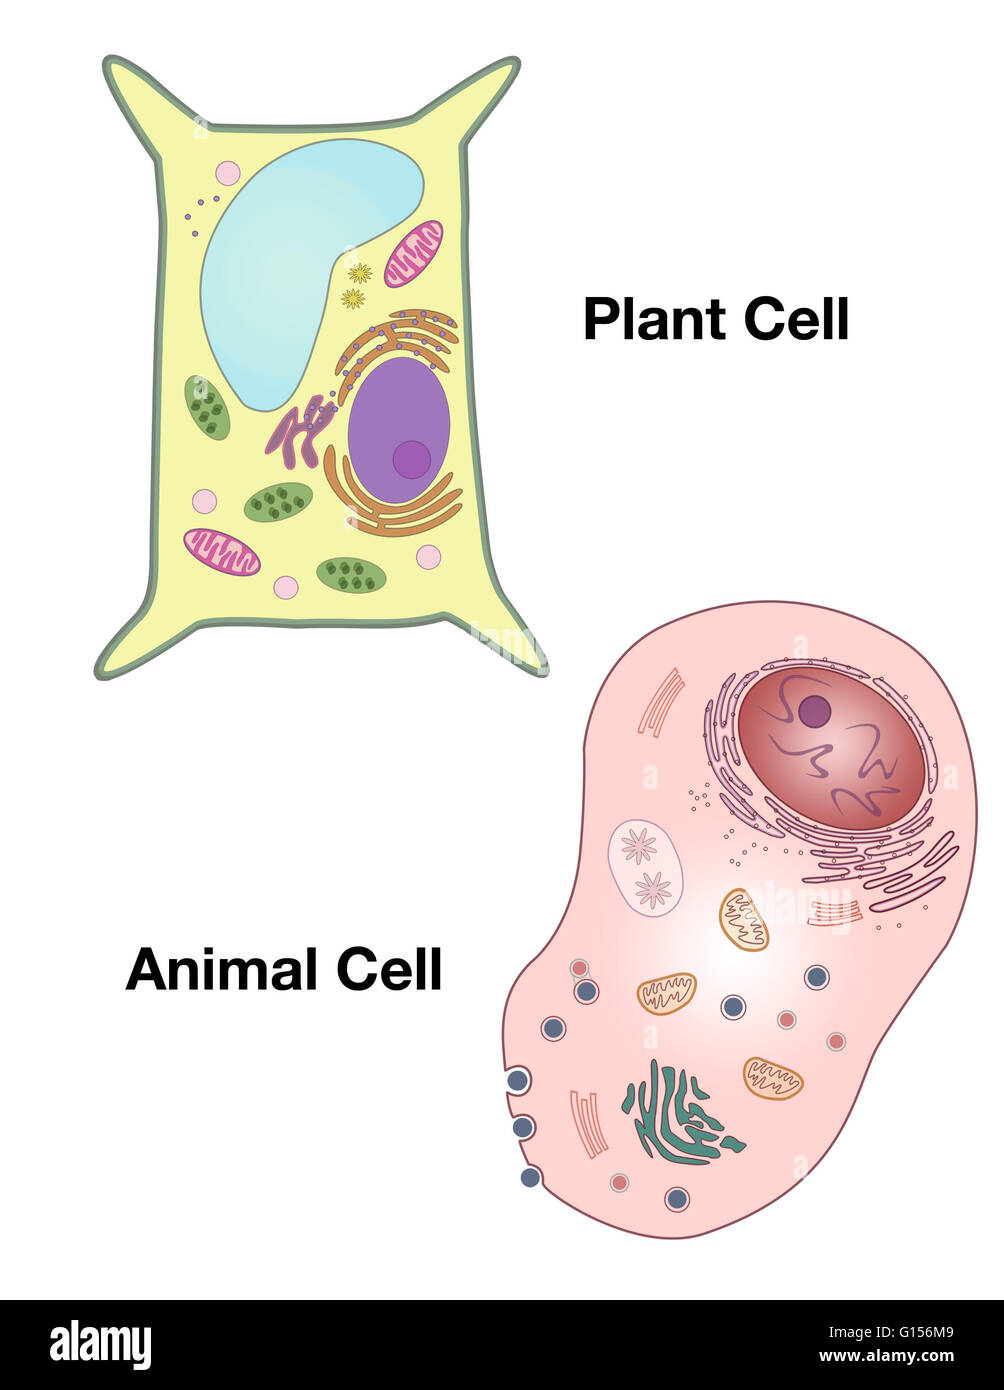 Generalized diagrams of a plant cell and an animal cell stock photo generalized diagrams of a plant cell and an animal cell ccuart Image collections